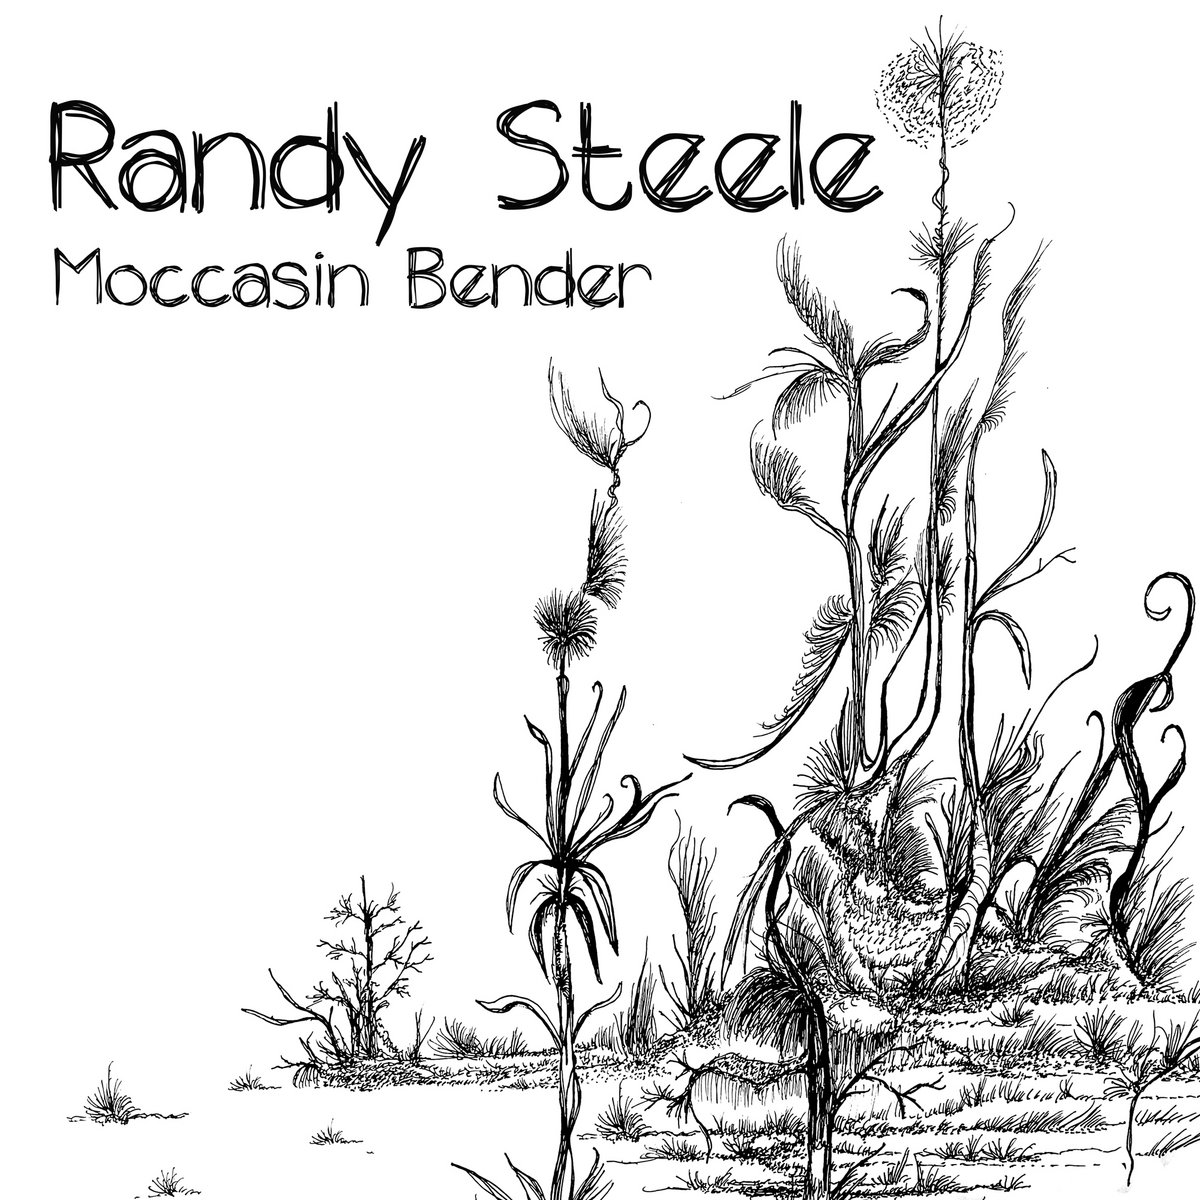 Moccasin Bender | Randy Steele